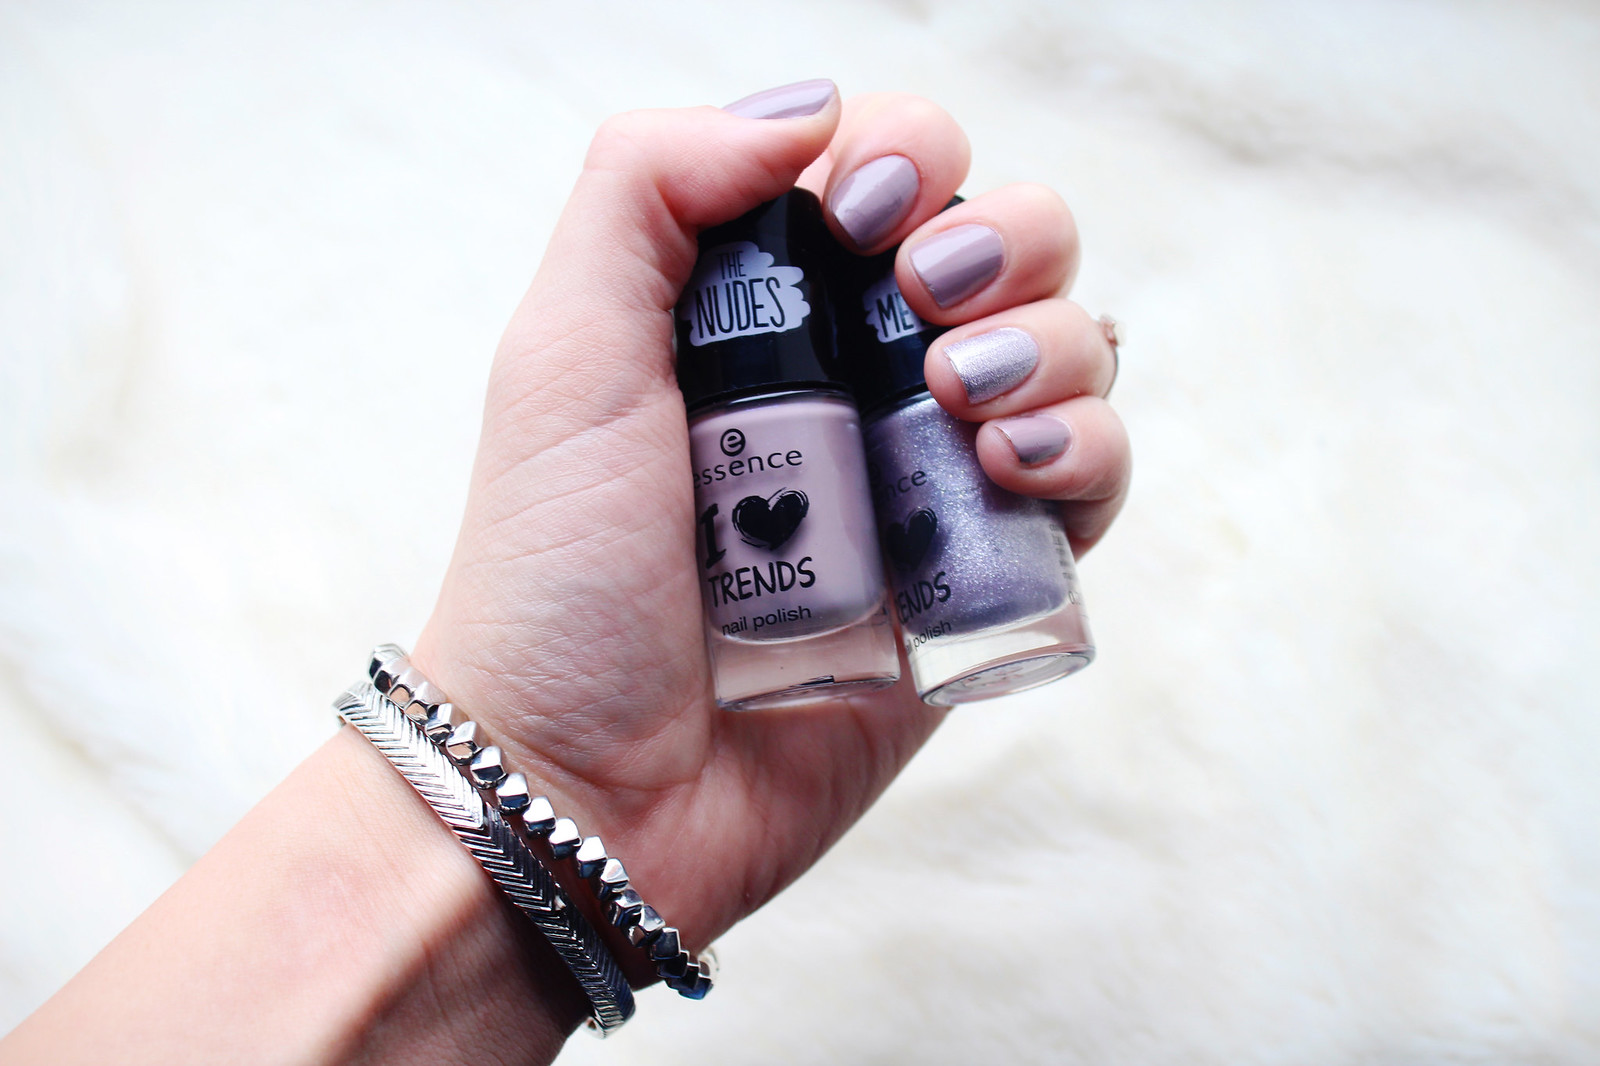 Essence I love Trends nail polish review